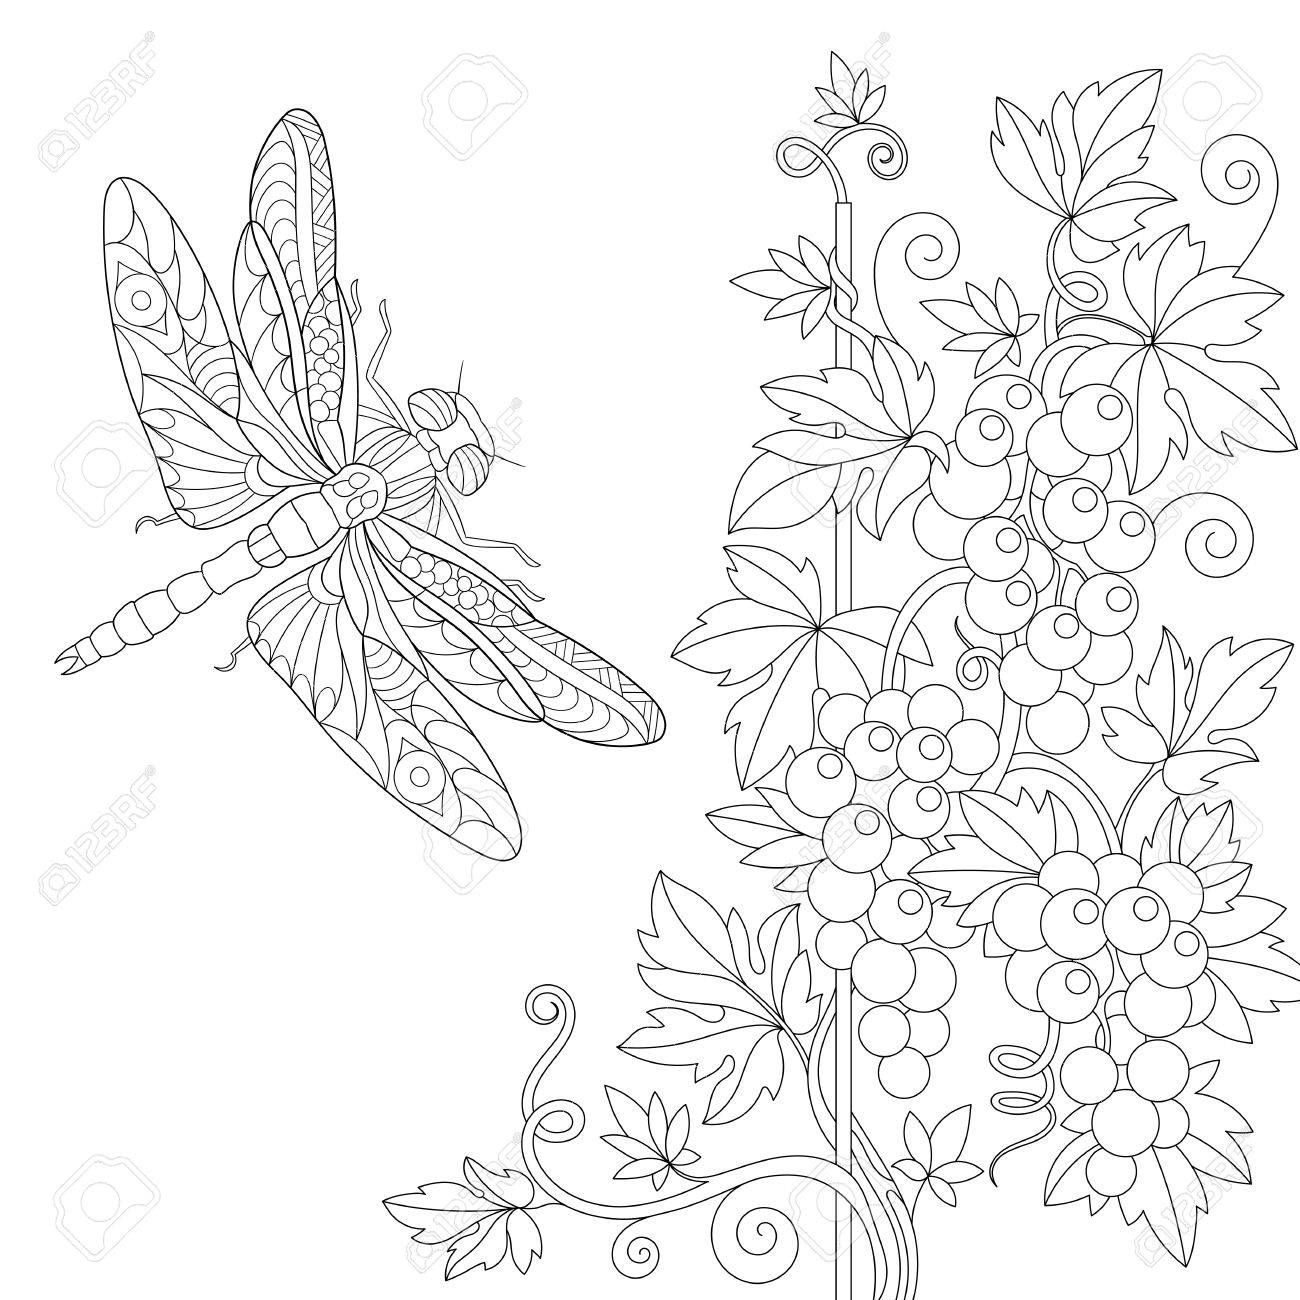 Coloring Page Of Dragonfly And Grape Vine. Freehand Sketch Drawing ... for Drawing Grape Vines  75tgx